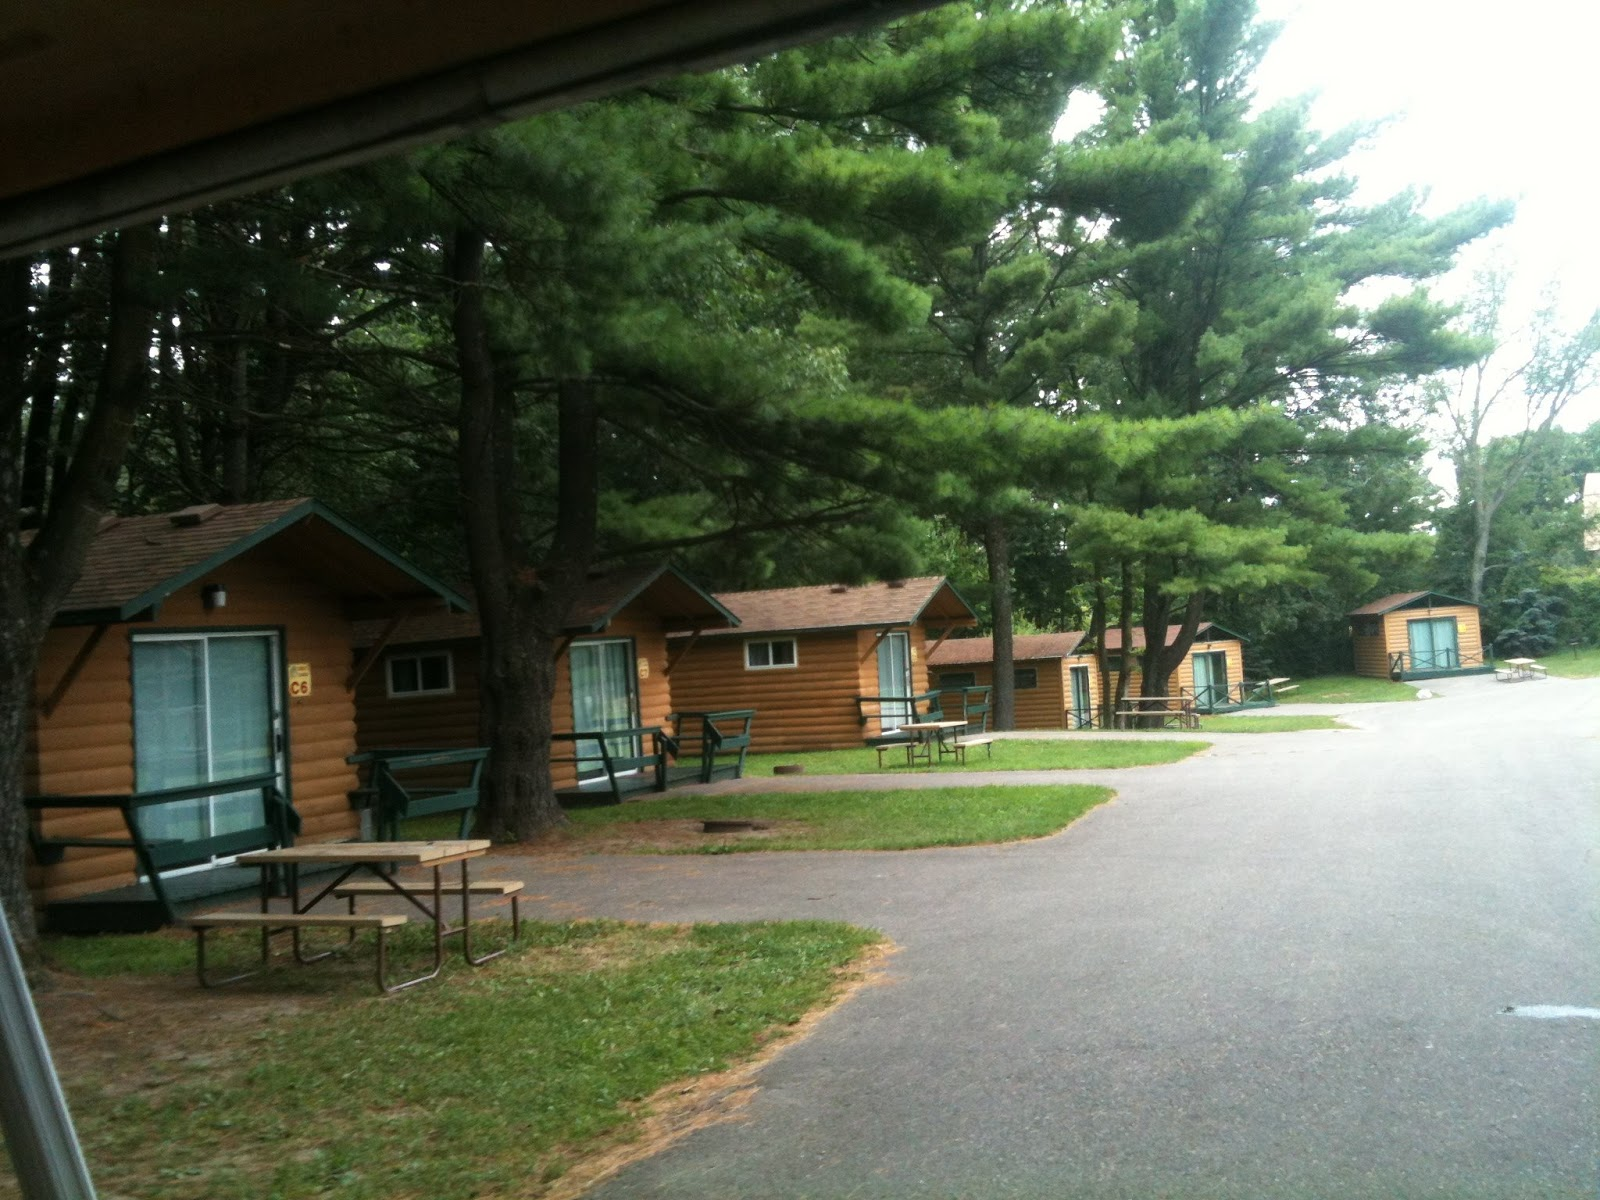 birchcliff resort in kalahari wilderness dells coupons wisconsin cabins reviews